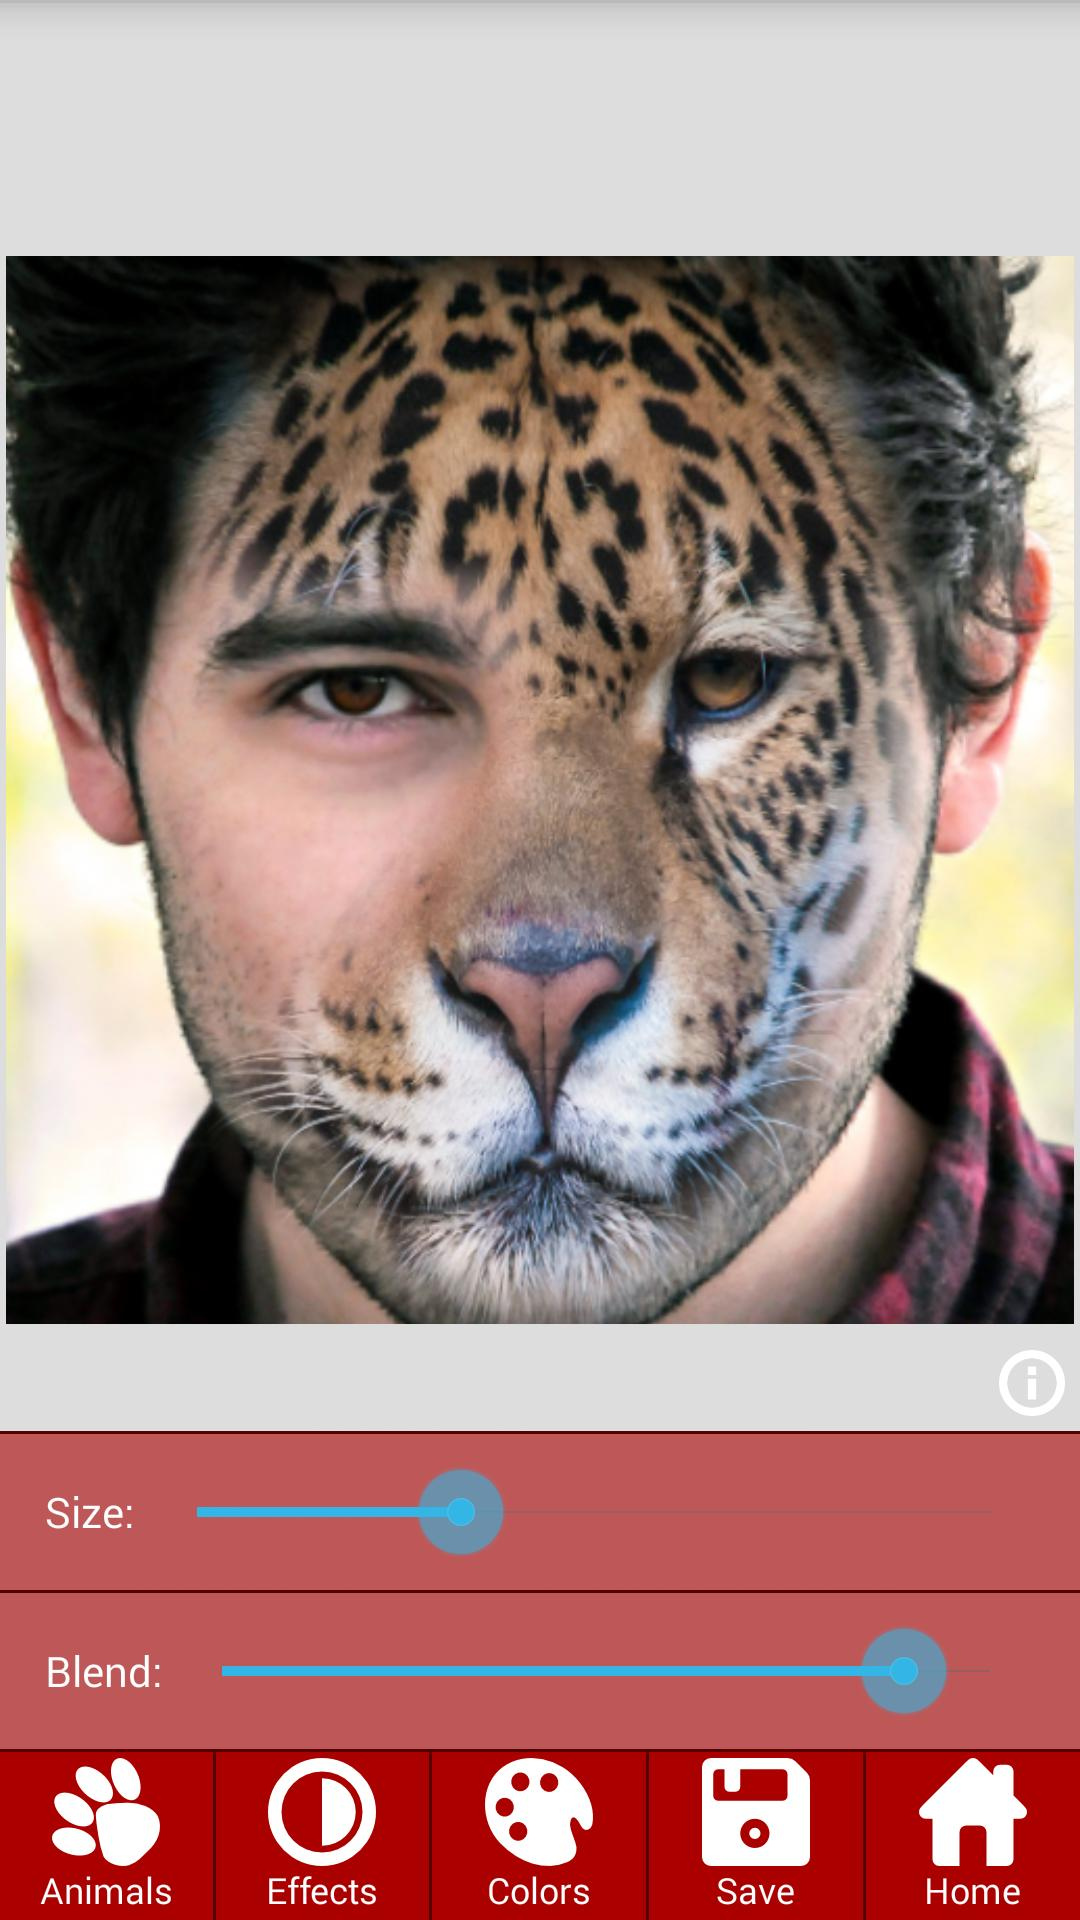 Animal Faces – Face Morphing app